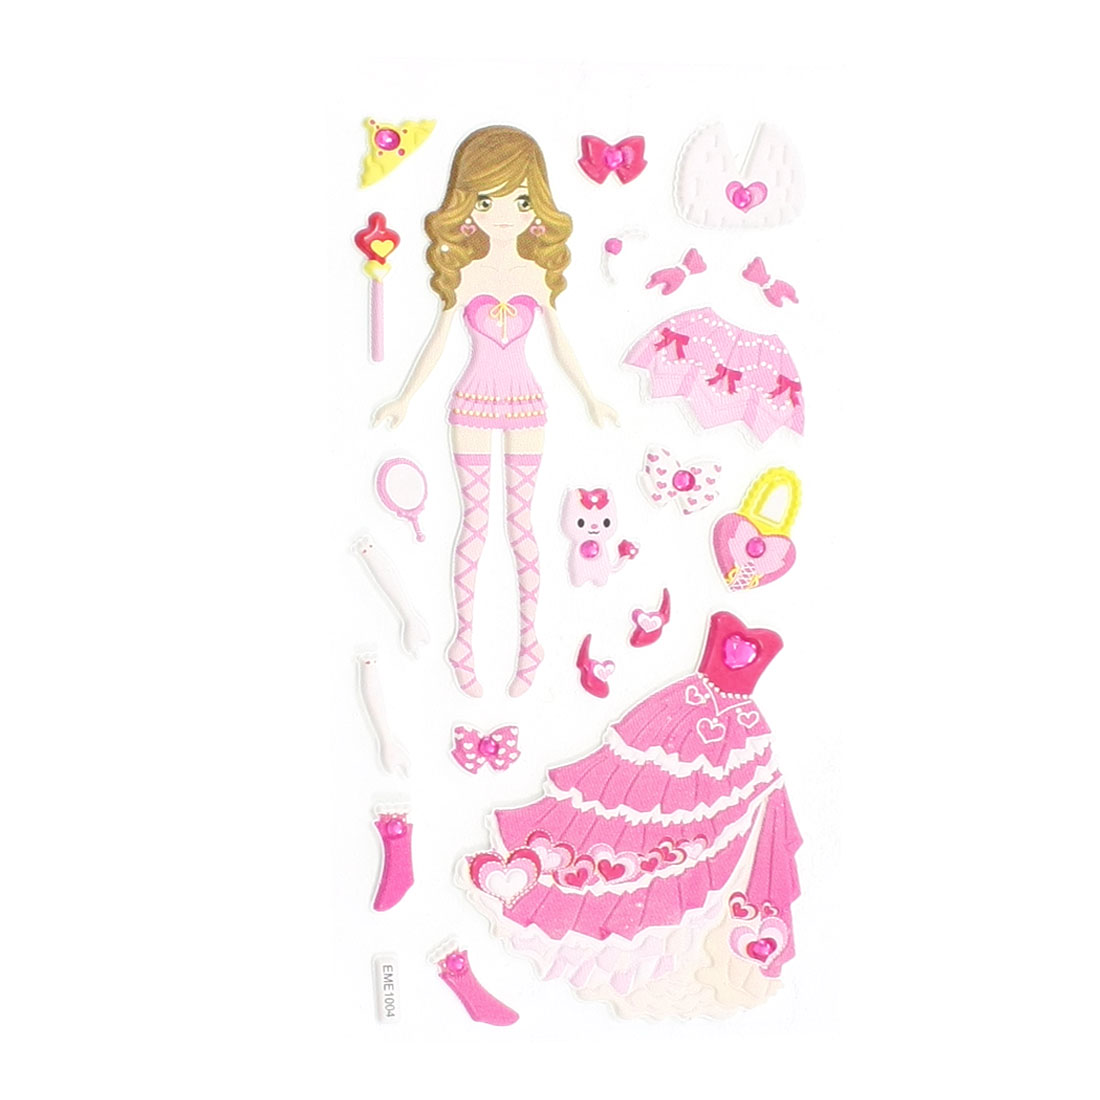 Girls Plastic DIY Rhinestone Inlaid Dress Up Princess 3D Sticker Sheet Pink